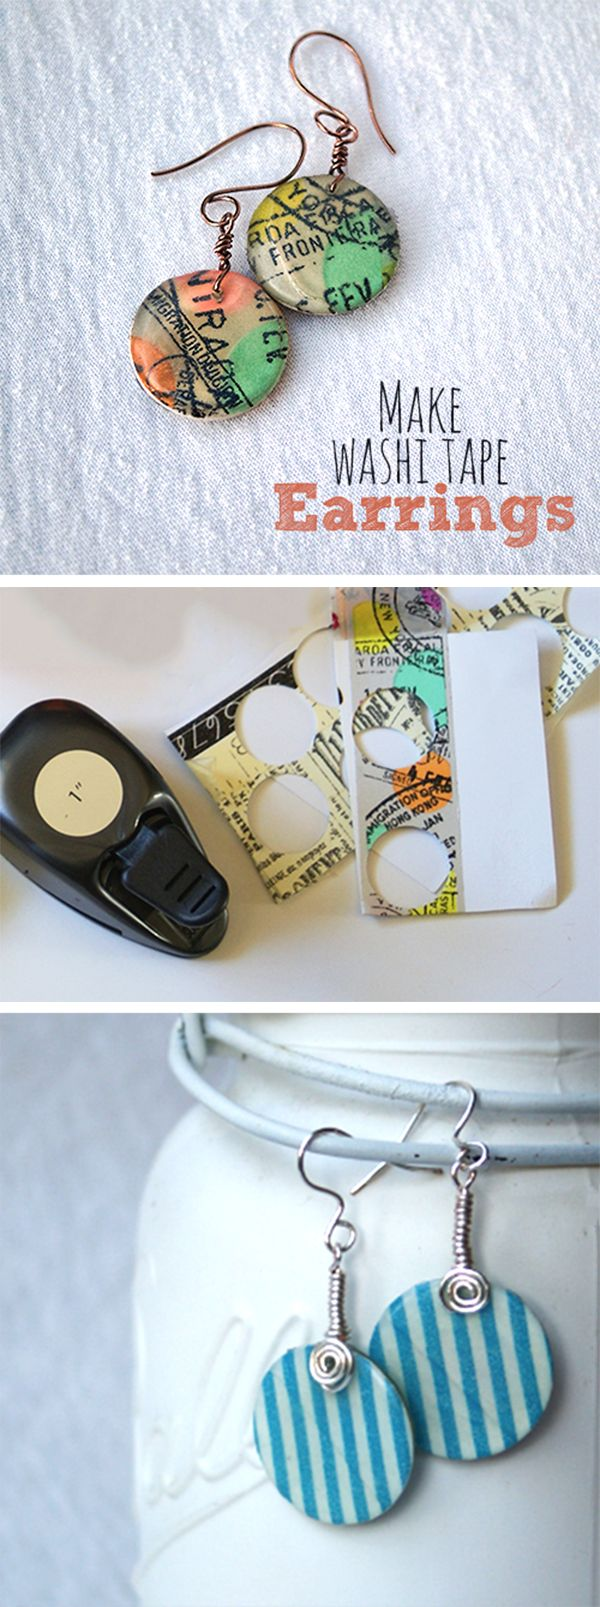 Make easy Washi Tape Earrings with Mod Podge and a circle punch!  @savedbyloves